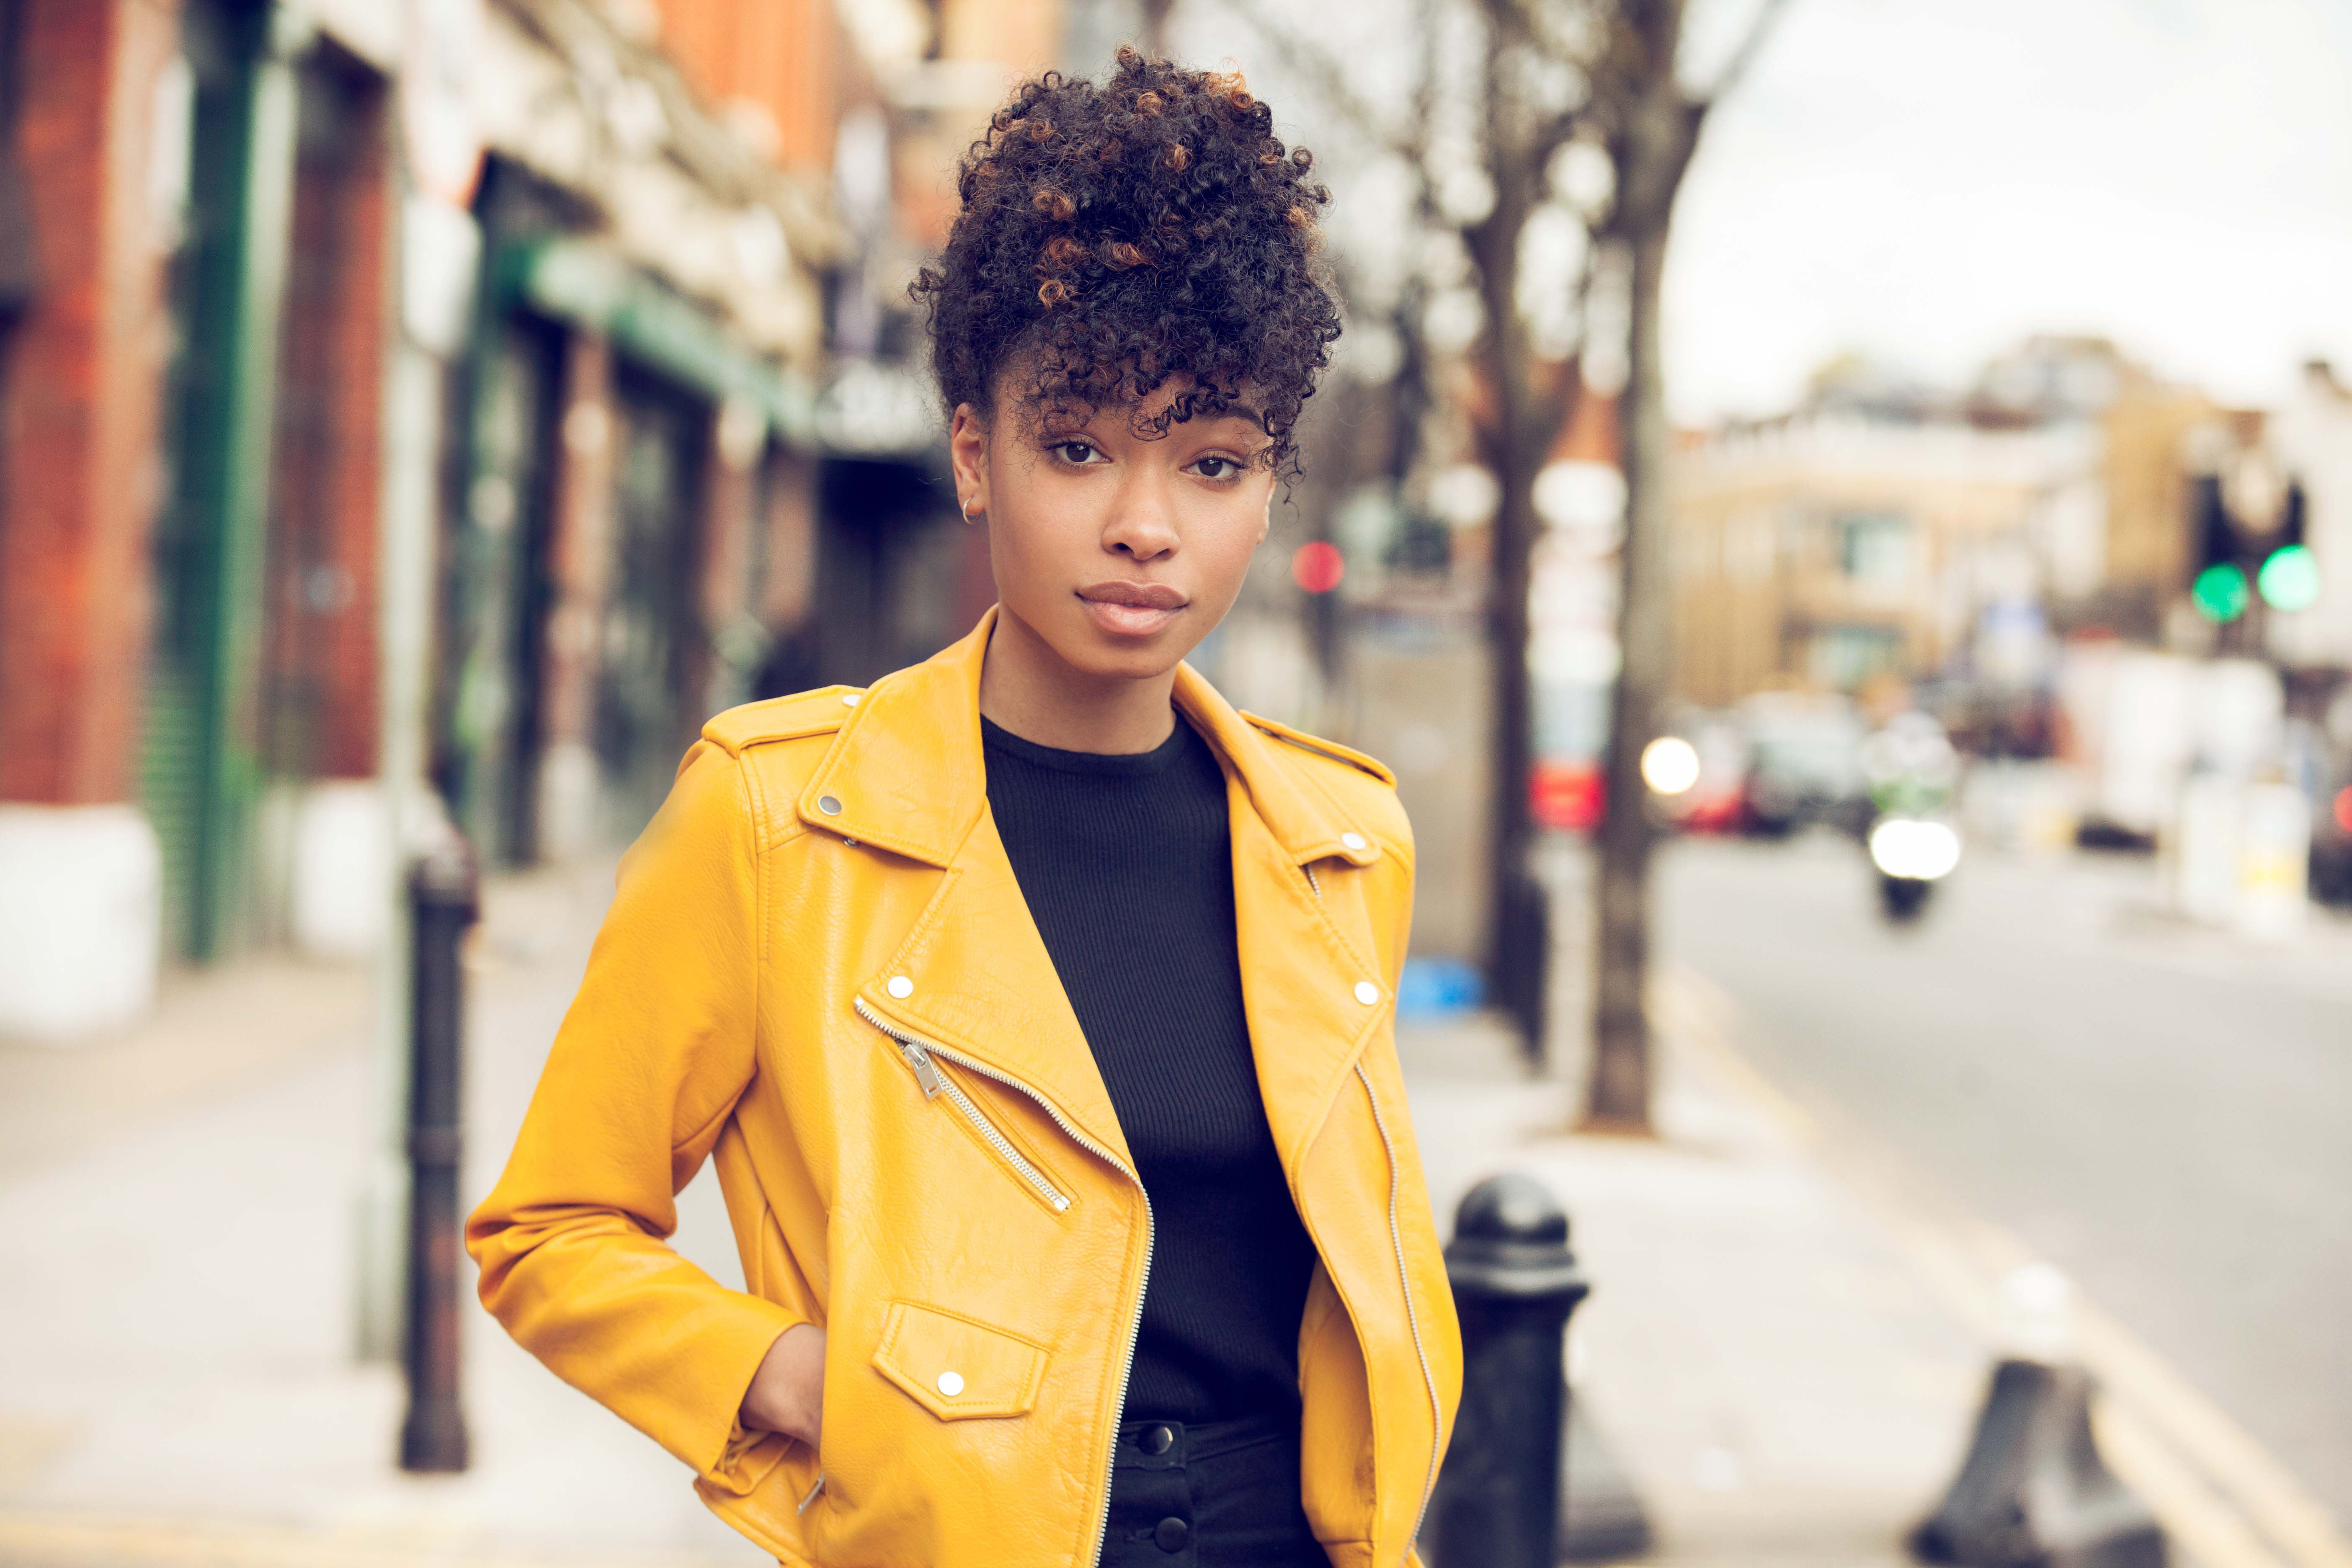 Naturally Curly Black Women Hairstyles 2017   Hairstyles, Haircuts with Short Haircuts For Naturally Curly Black Hair